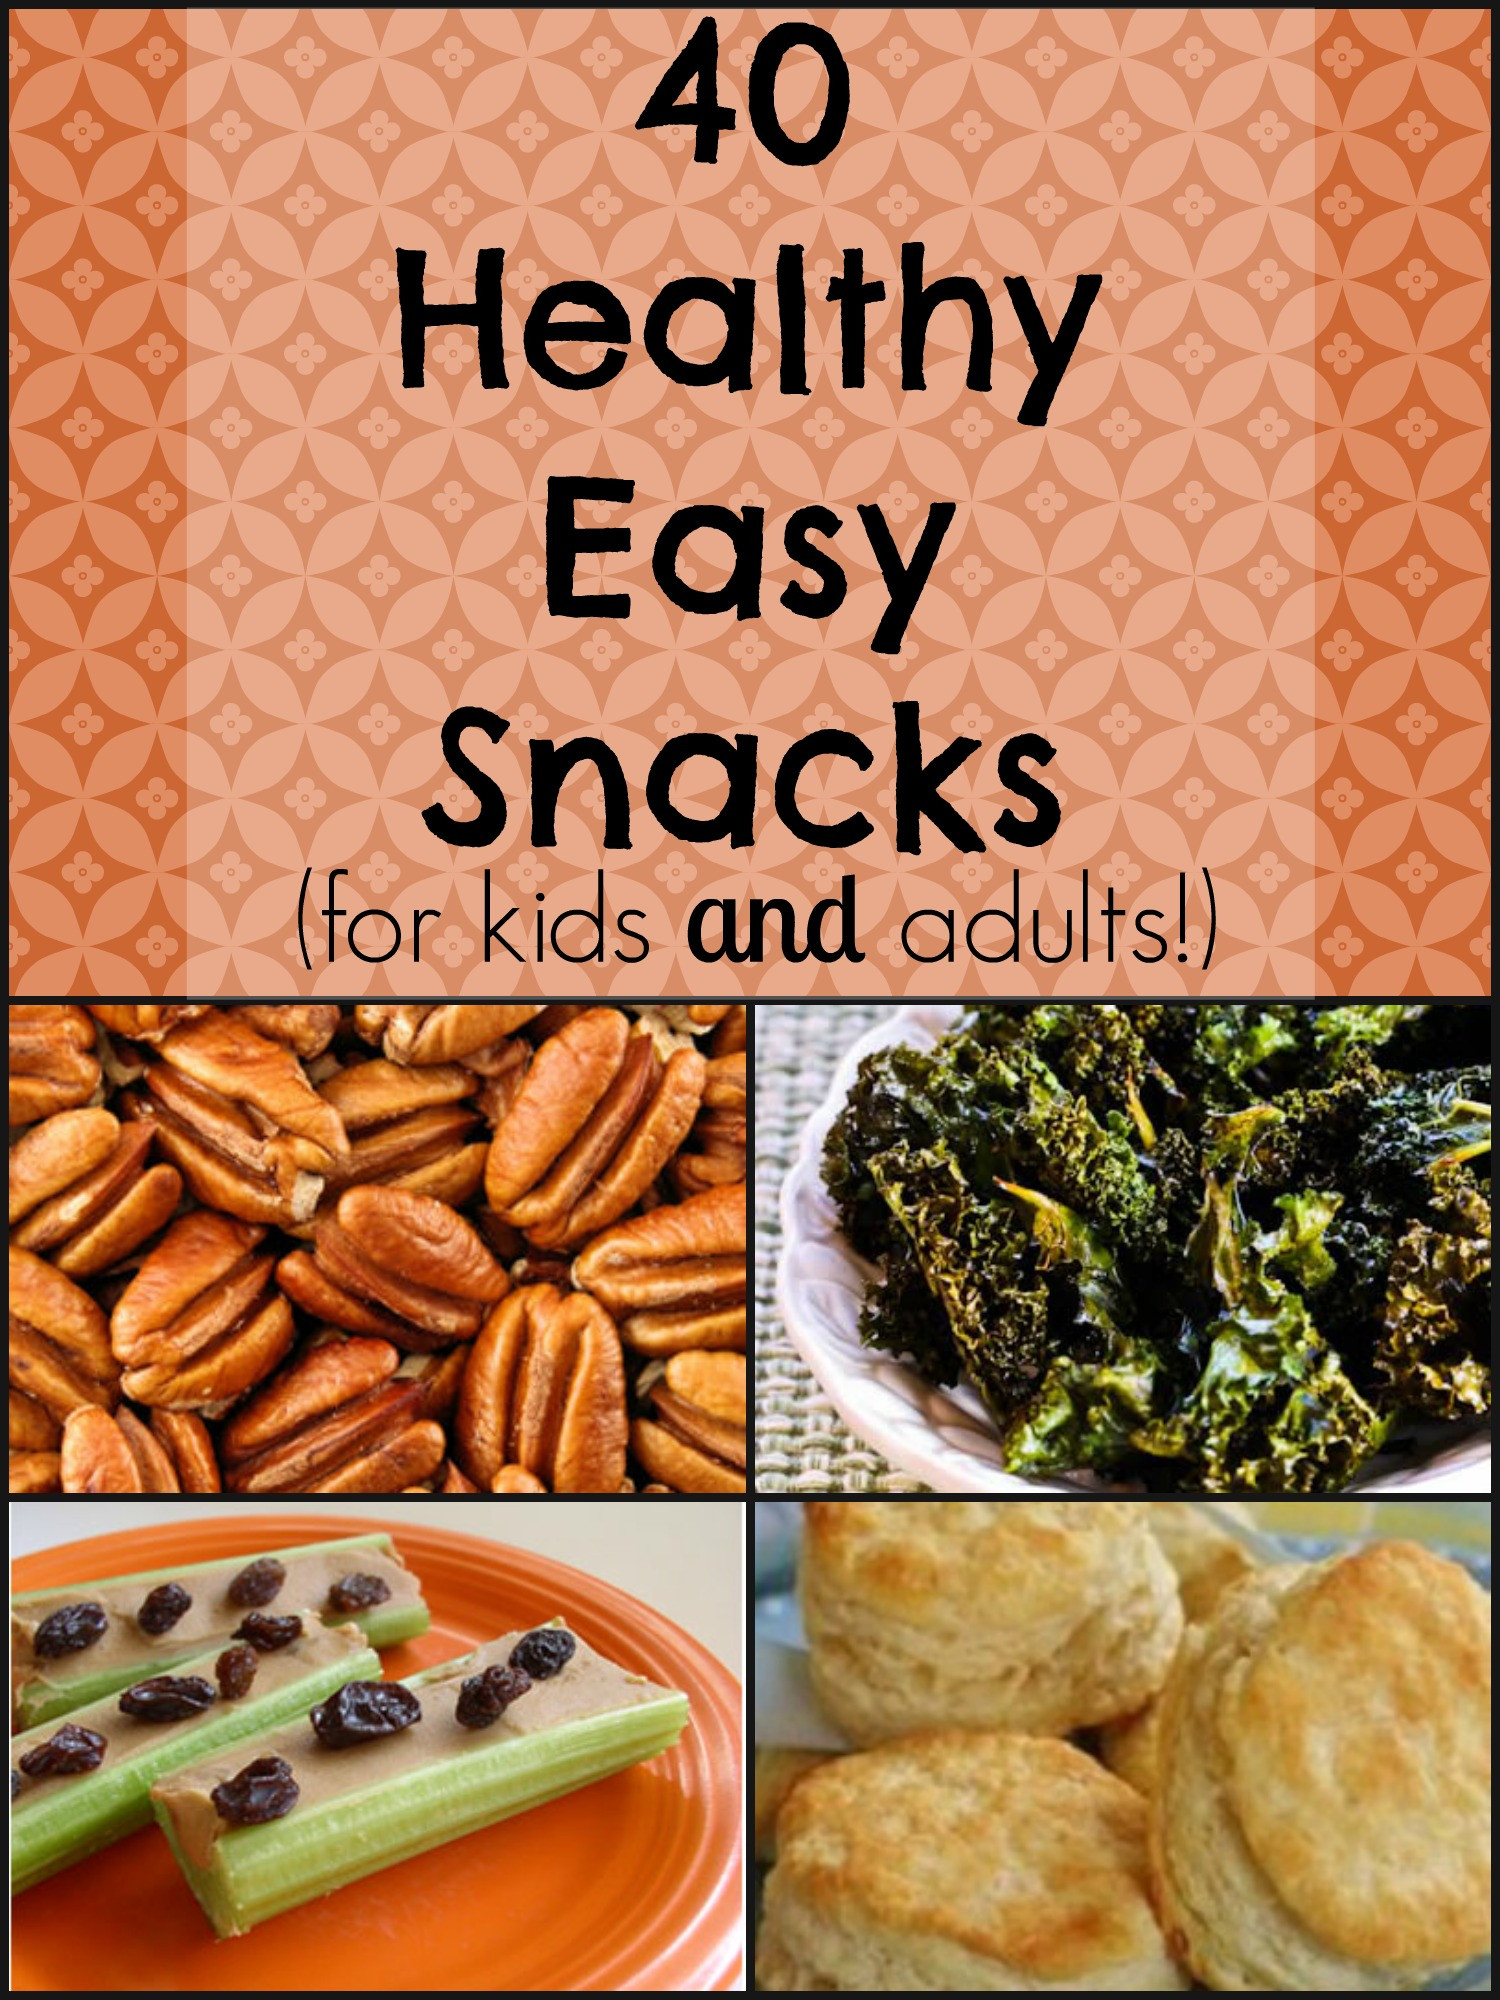 The Best Healthy Snacks  40 Healthy Easy Snacks for kids and adults